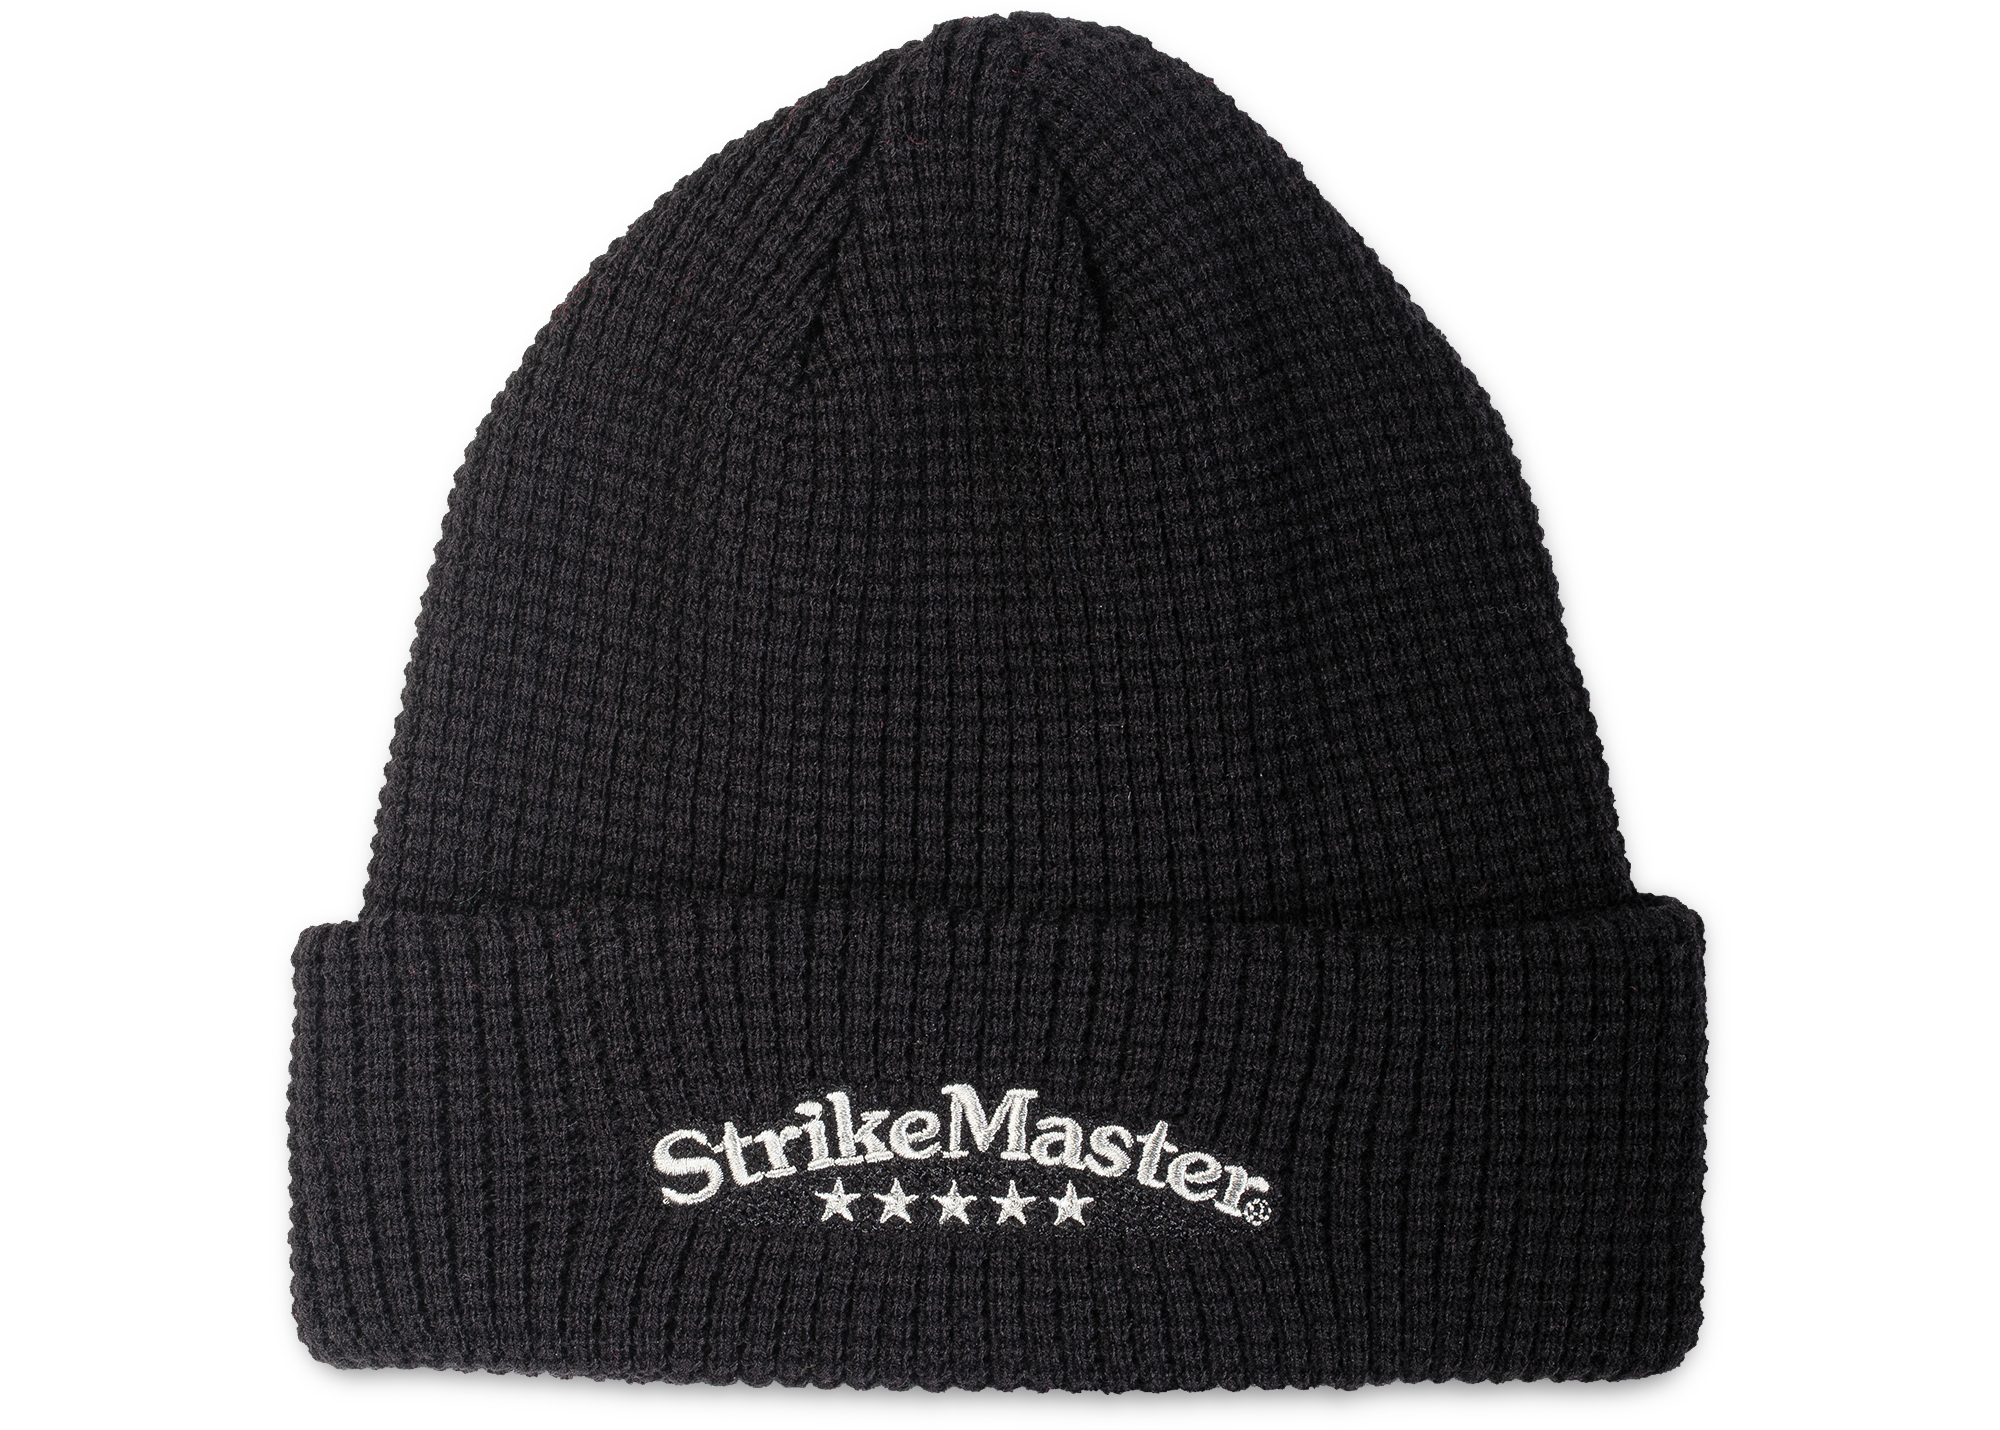 StrikeMaster® Beanie - Knitted Black